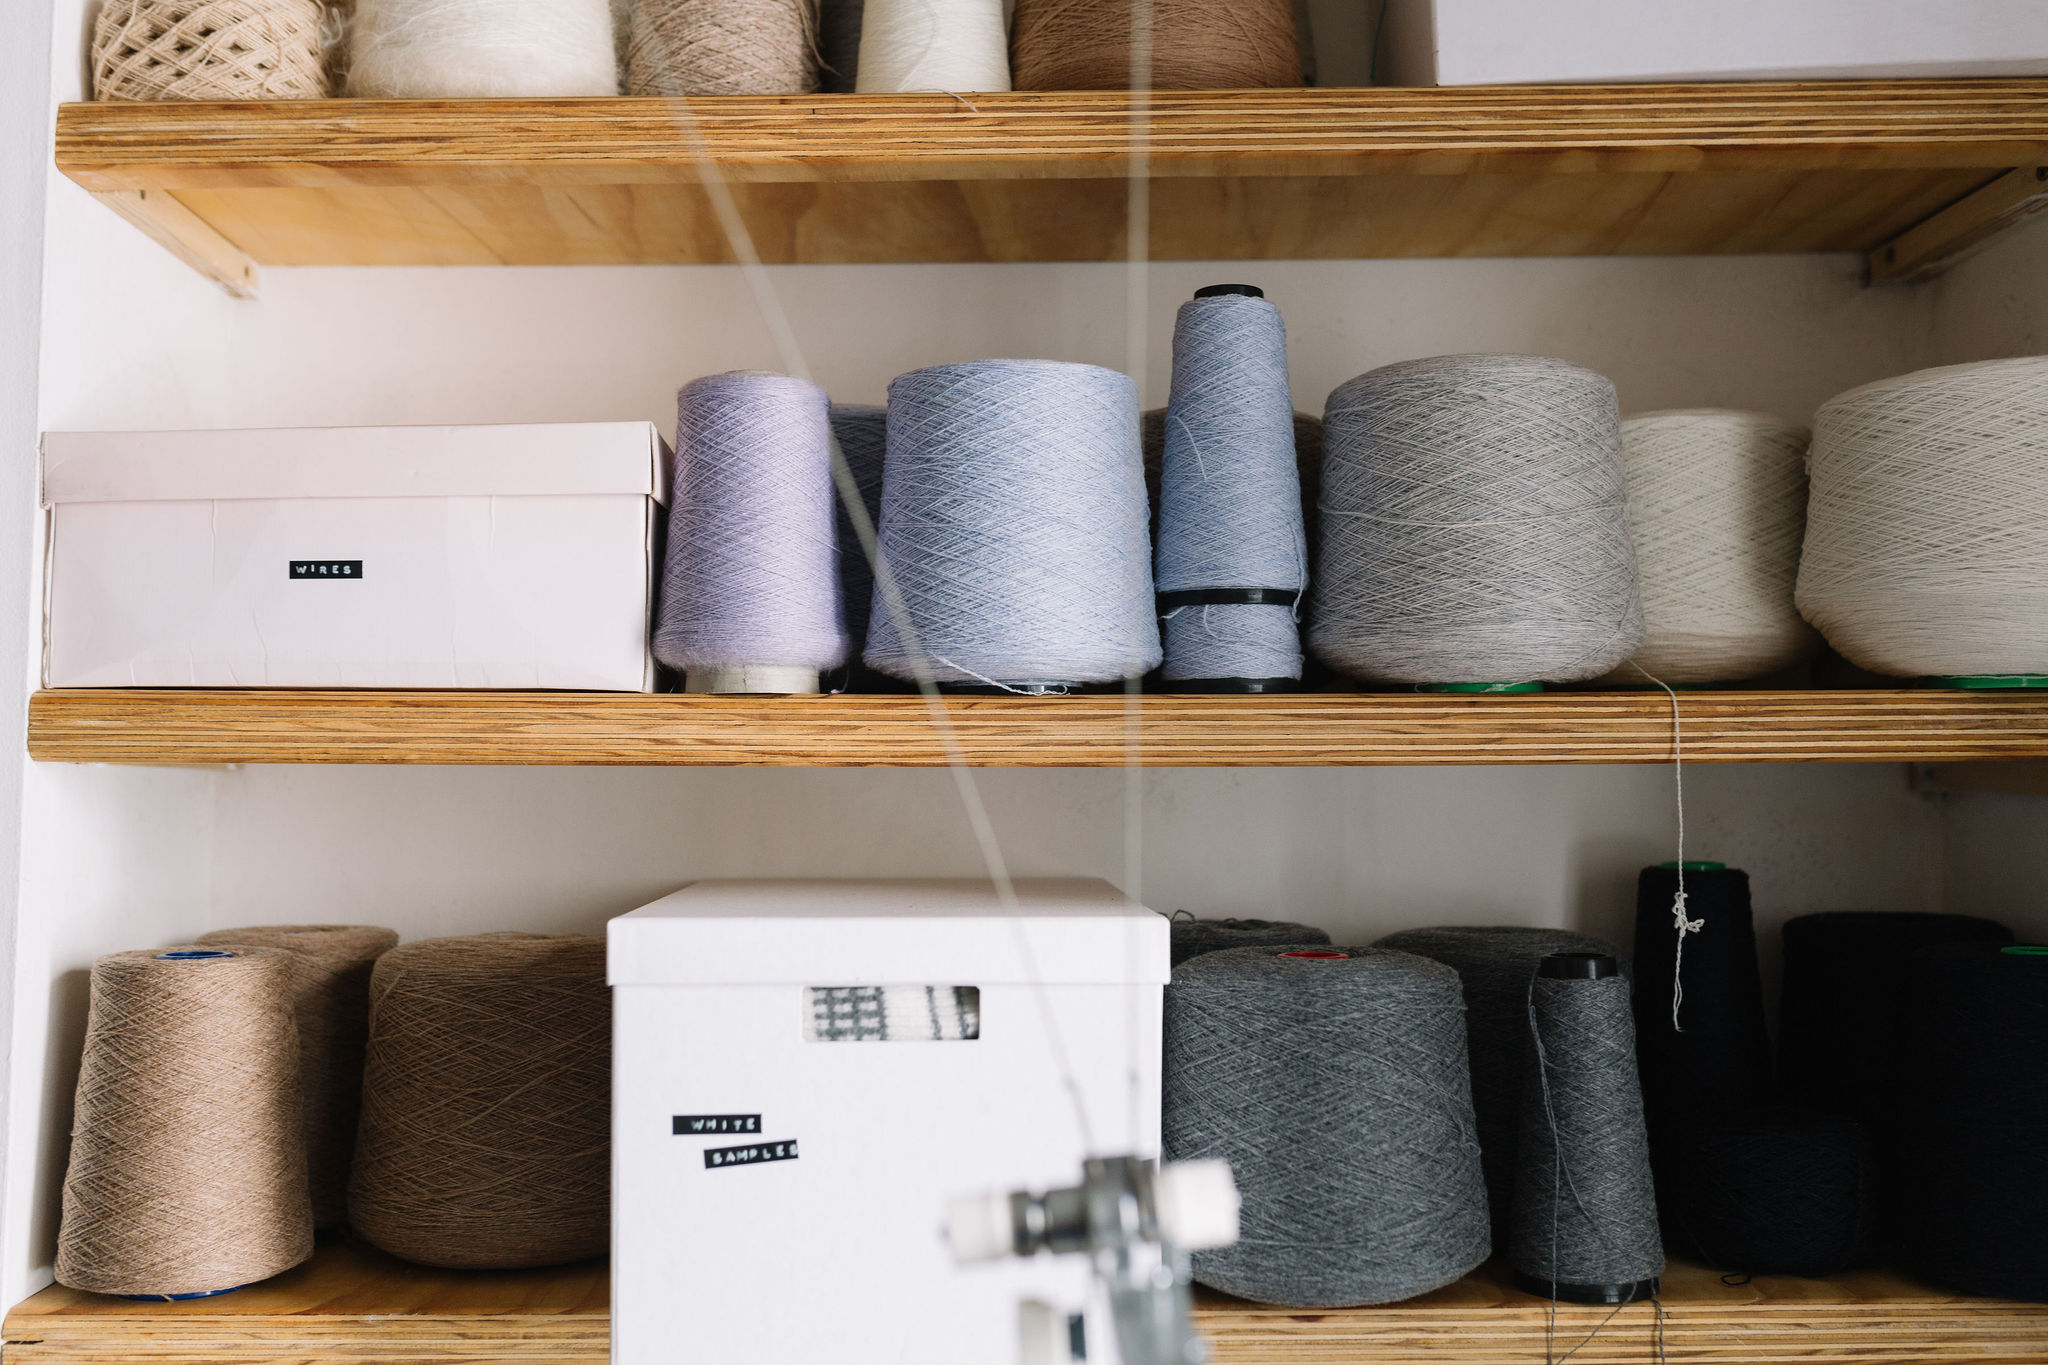 cones of wools on a shelf